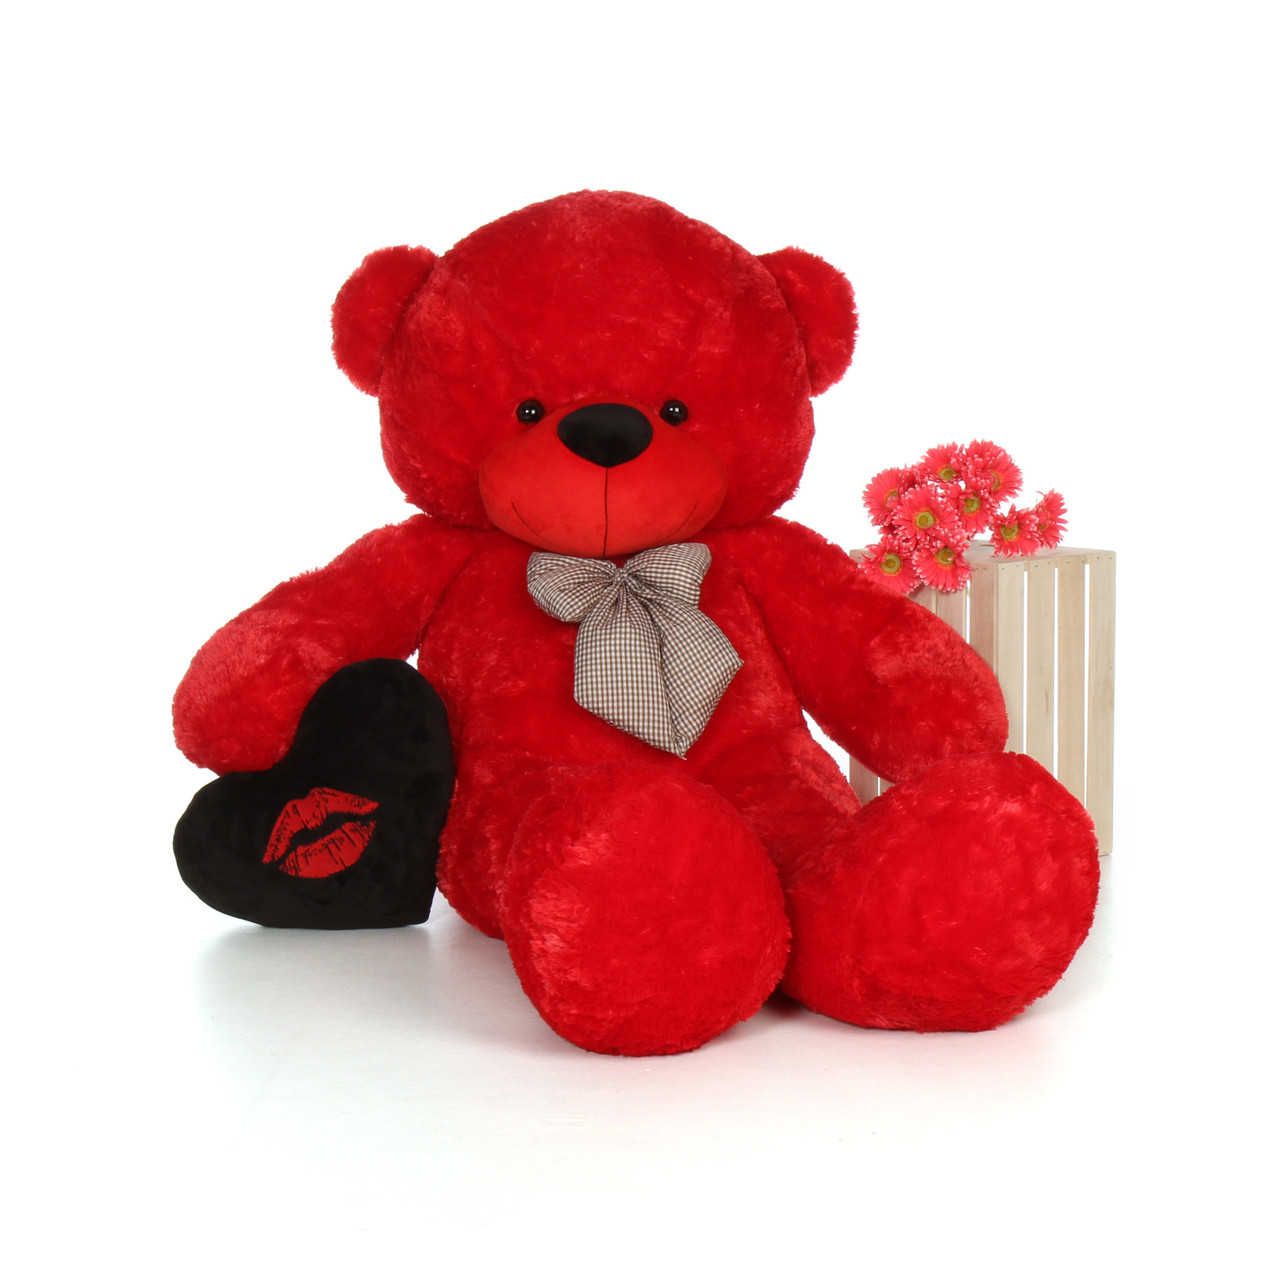 6ft Giant Red Teddy Bear Bitsy Cuddles with a Black Kiss plush heart